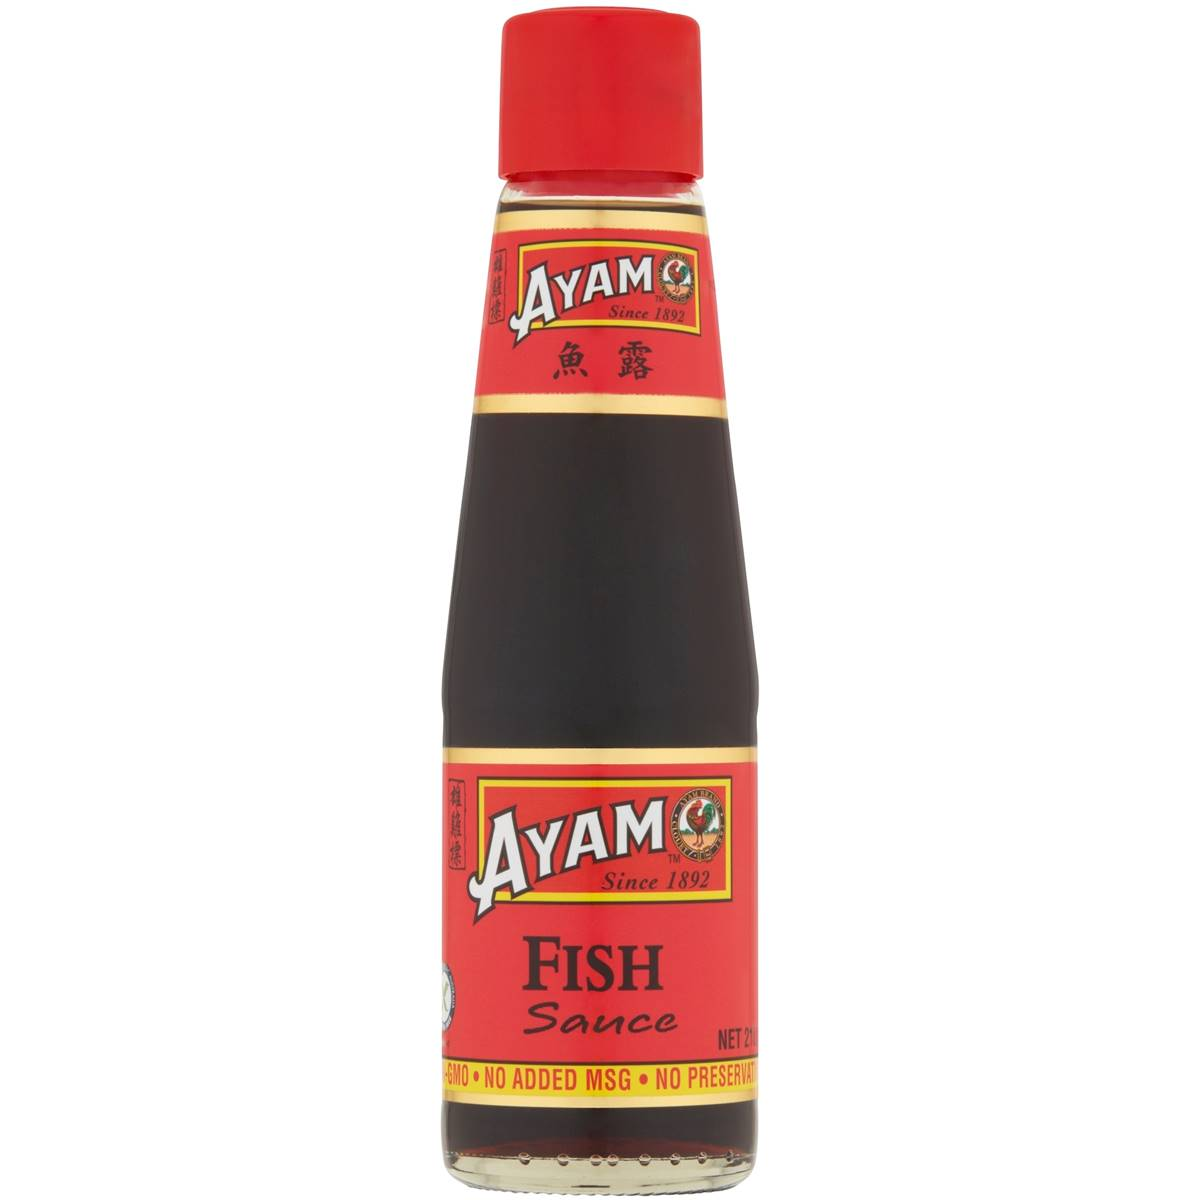 Ayam fish sauce woolworths for Fish sauce caramel